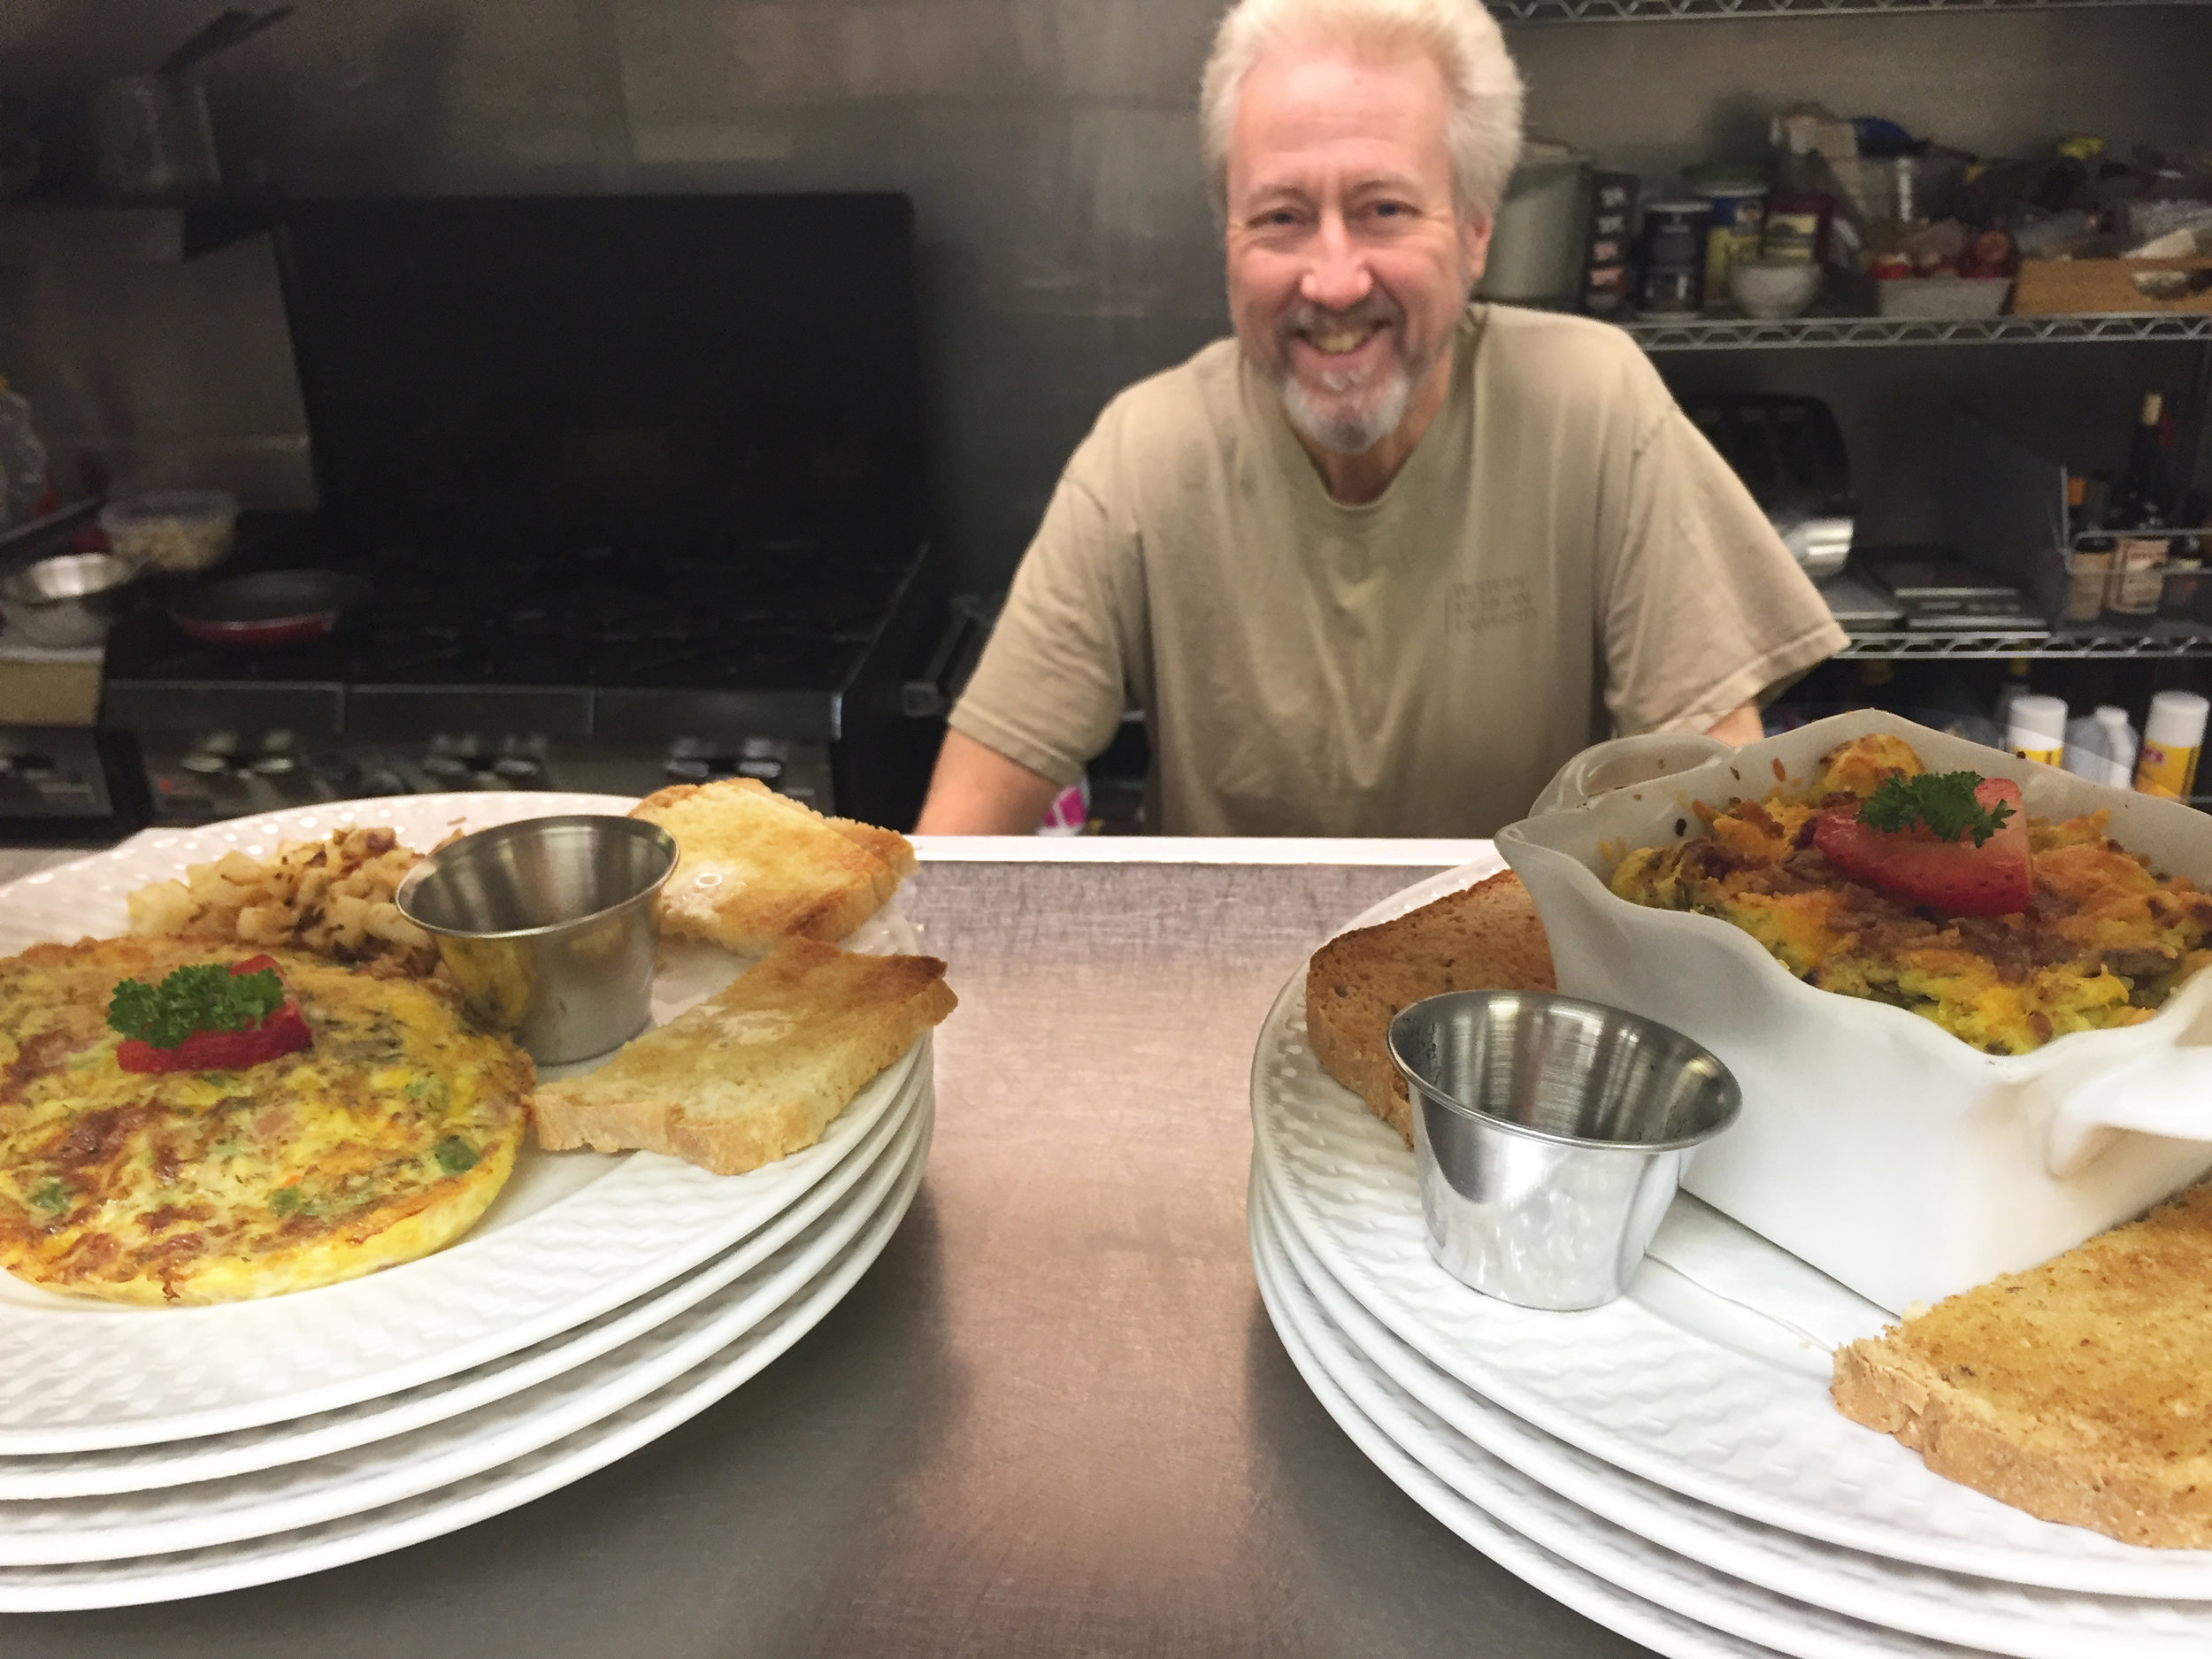 Garrett Meyers is the man behind the great tastes at The Kalamazoo House